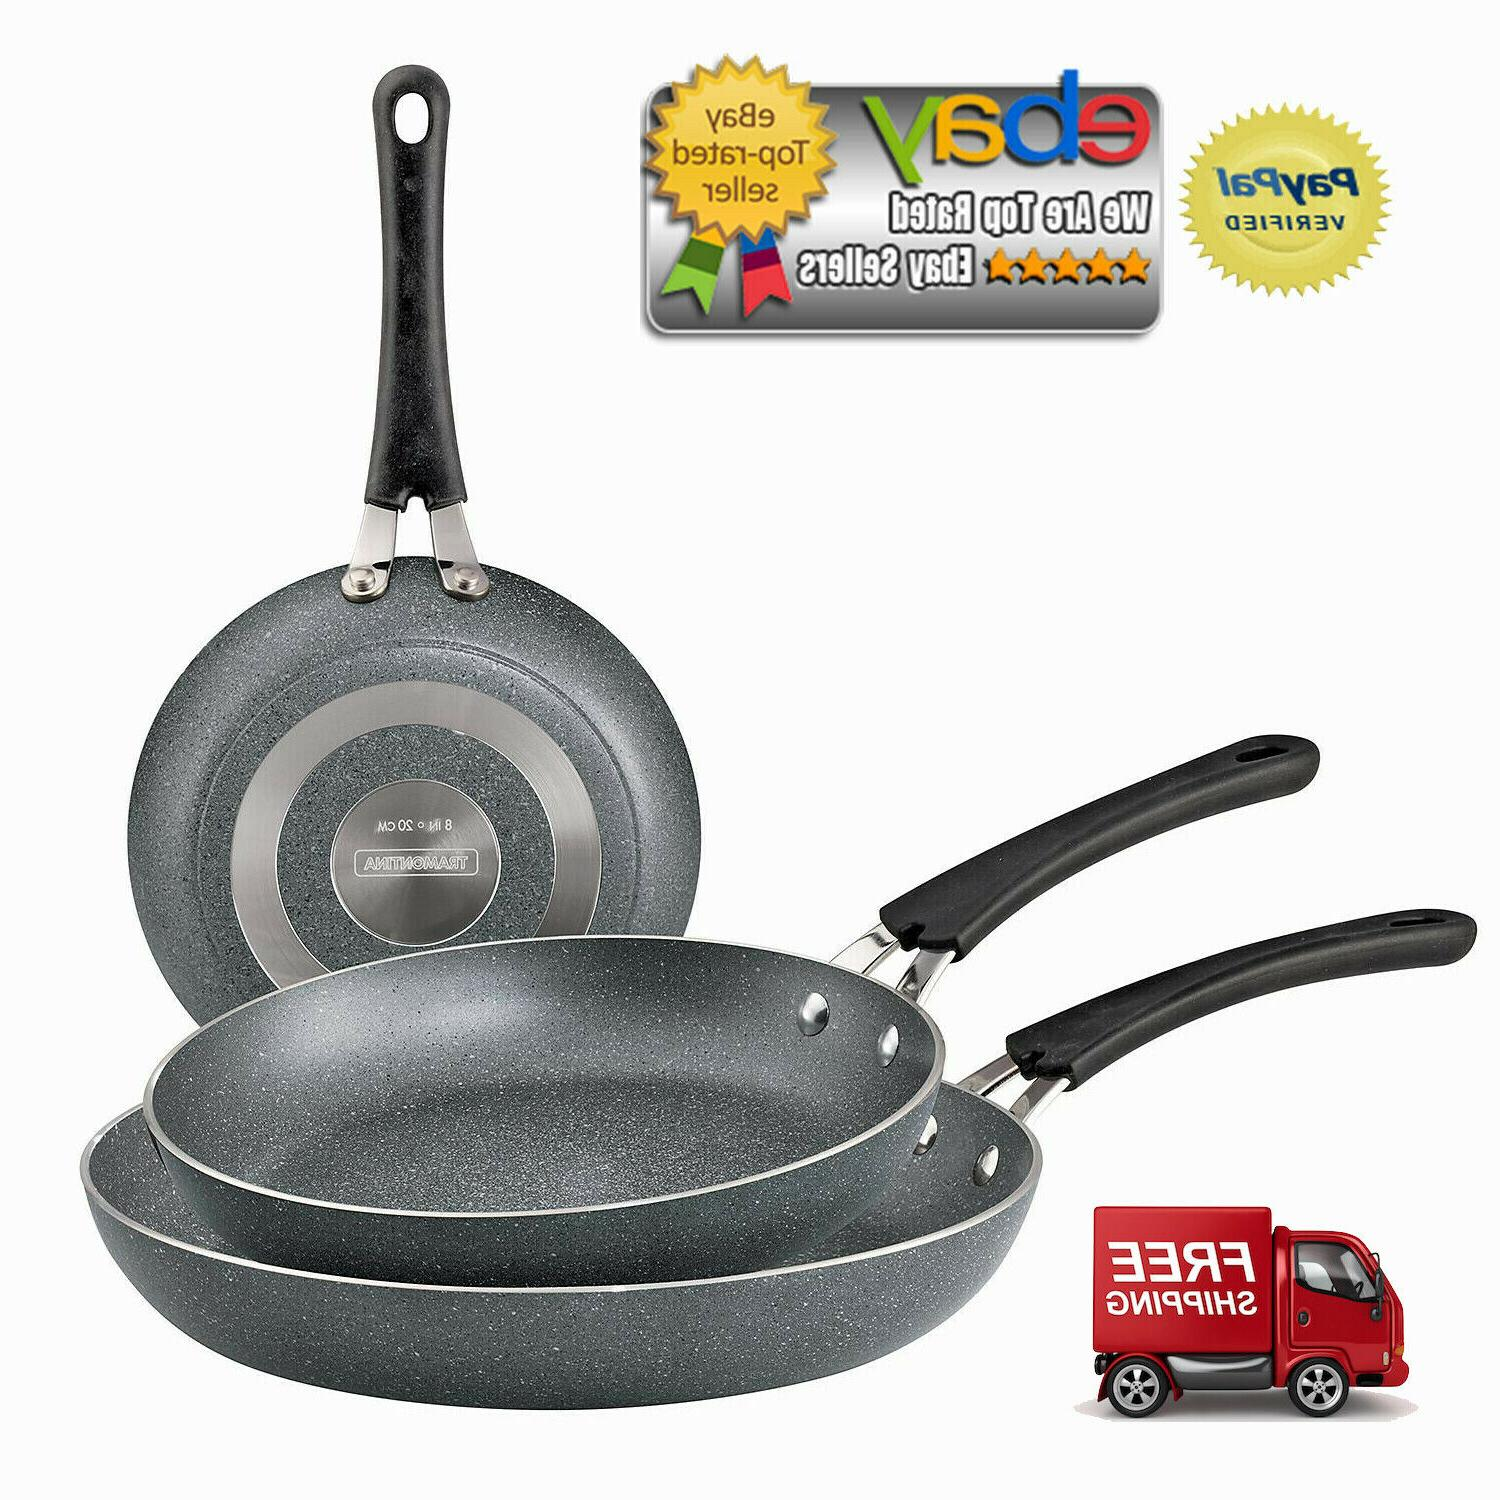 3 pack ceramic reinforced nonstick fry pans